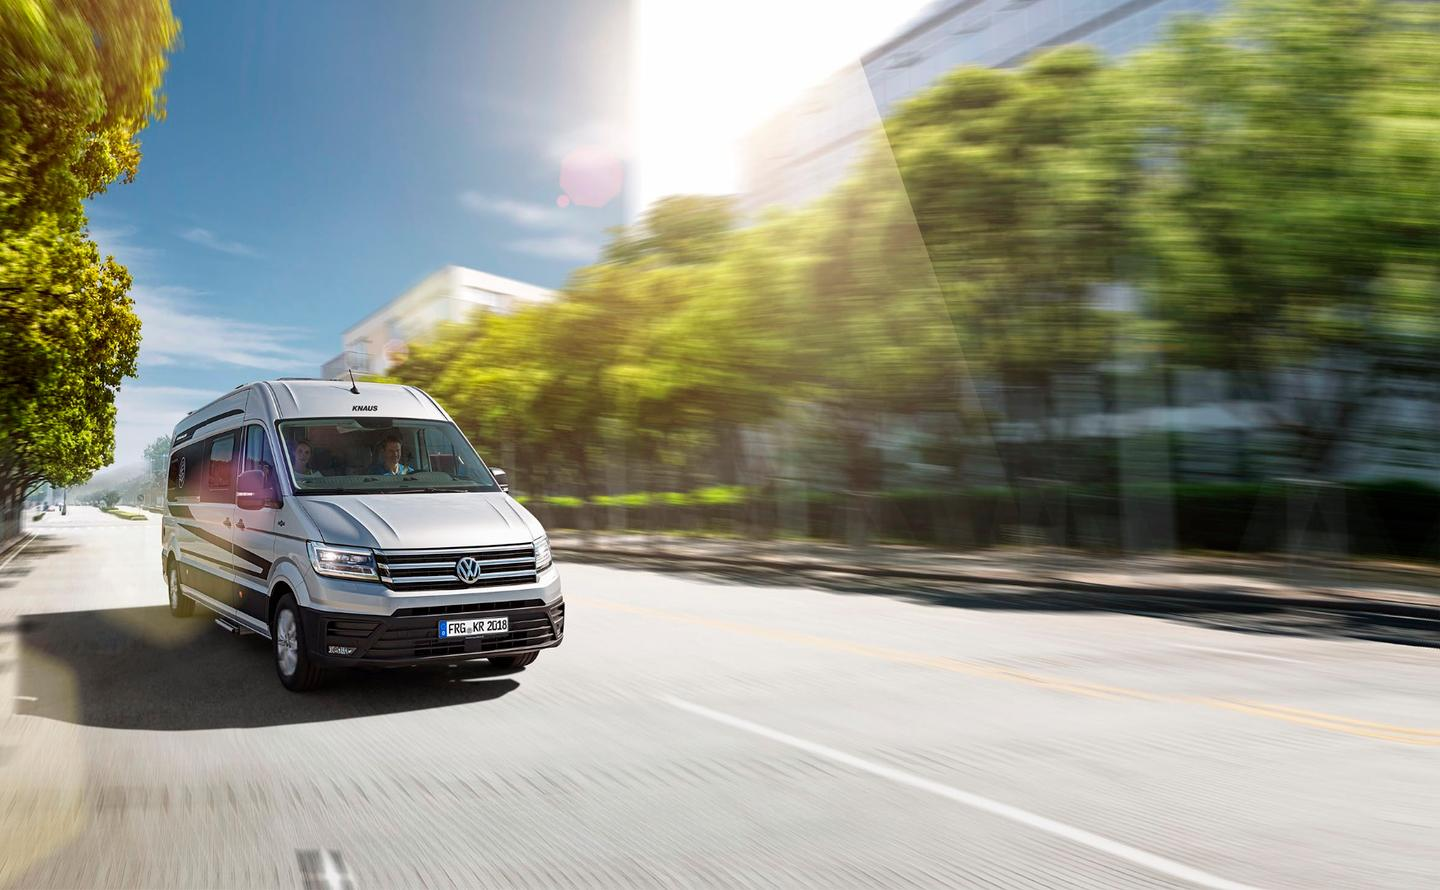 Knaus turns the newest Volkswagen Crafter van into the Boxdrive camper